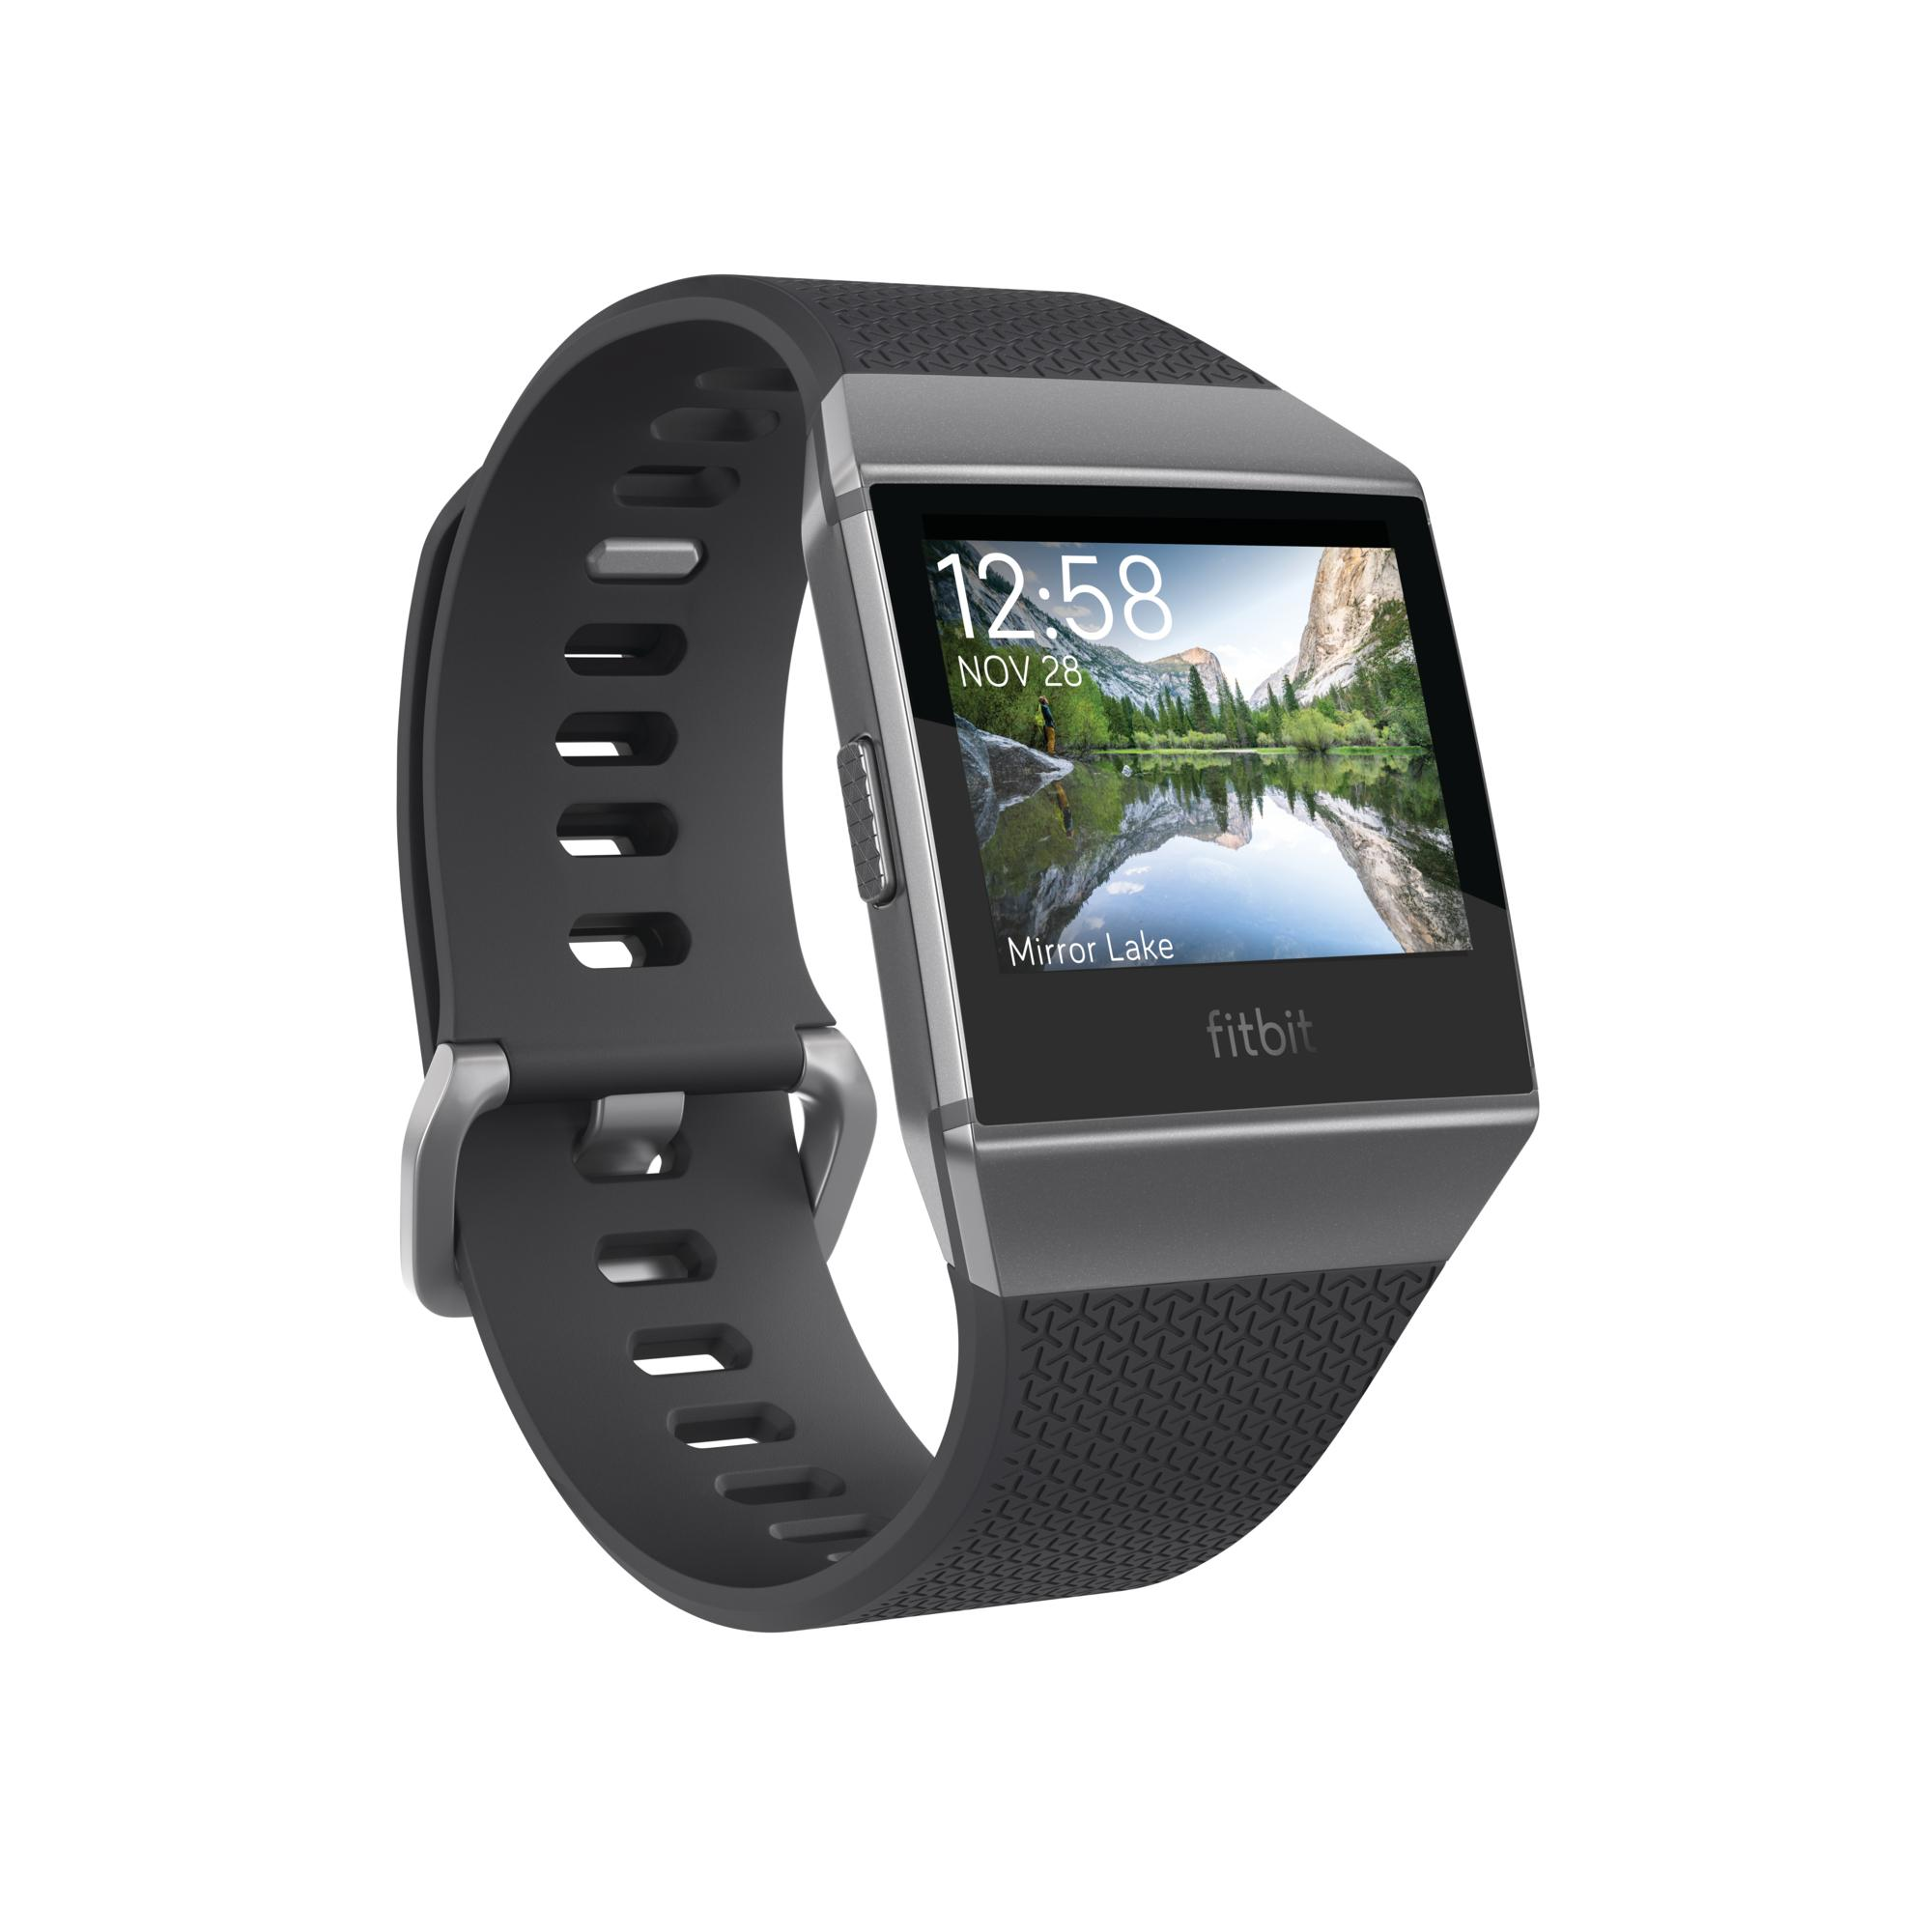 Buy Affordable Stainless Steel Smartwatches Lazada